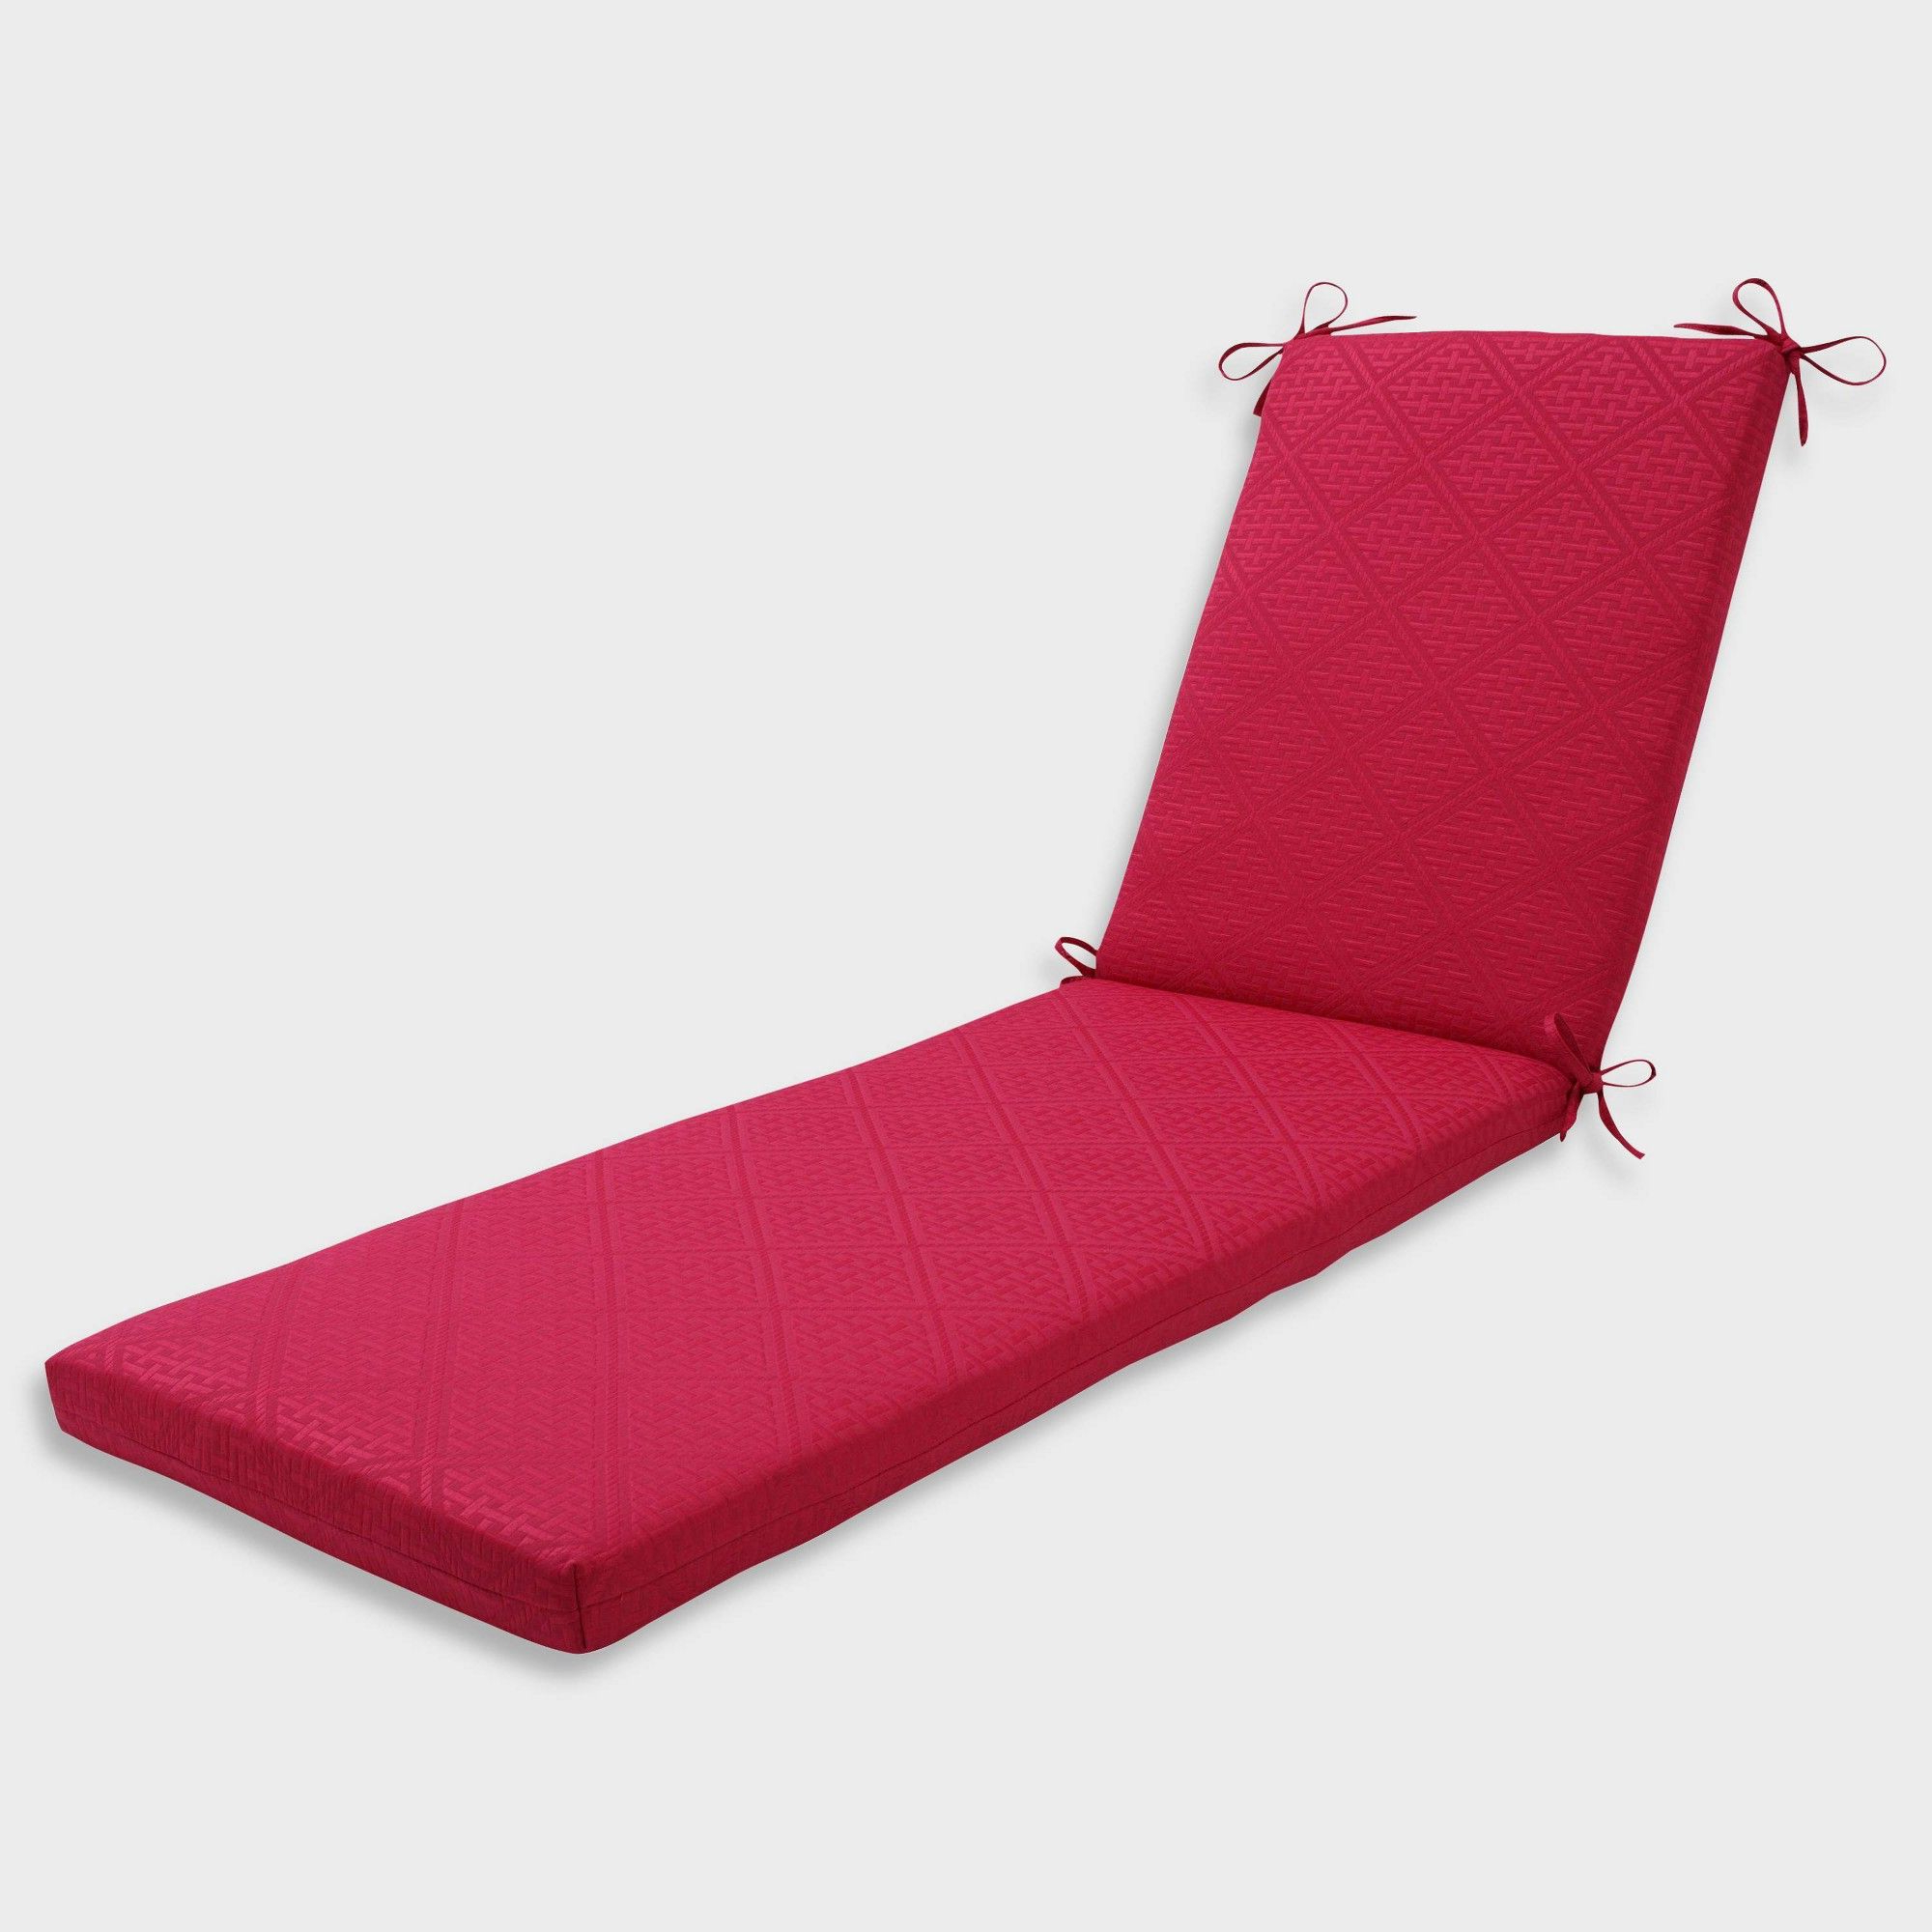 """80"""" X 23"""" X 3"""" Paragon Raspberry Chaise Lounge Outdoor With Regard To Preferred Indoor Outdoor Textured Bright Chaise Lounges With Sunbrella Fabric (Gallery 5 of 25)"""